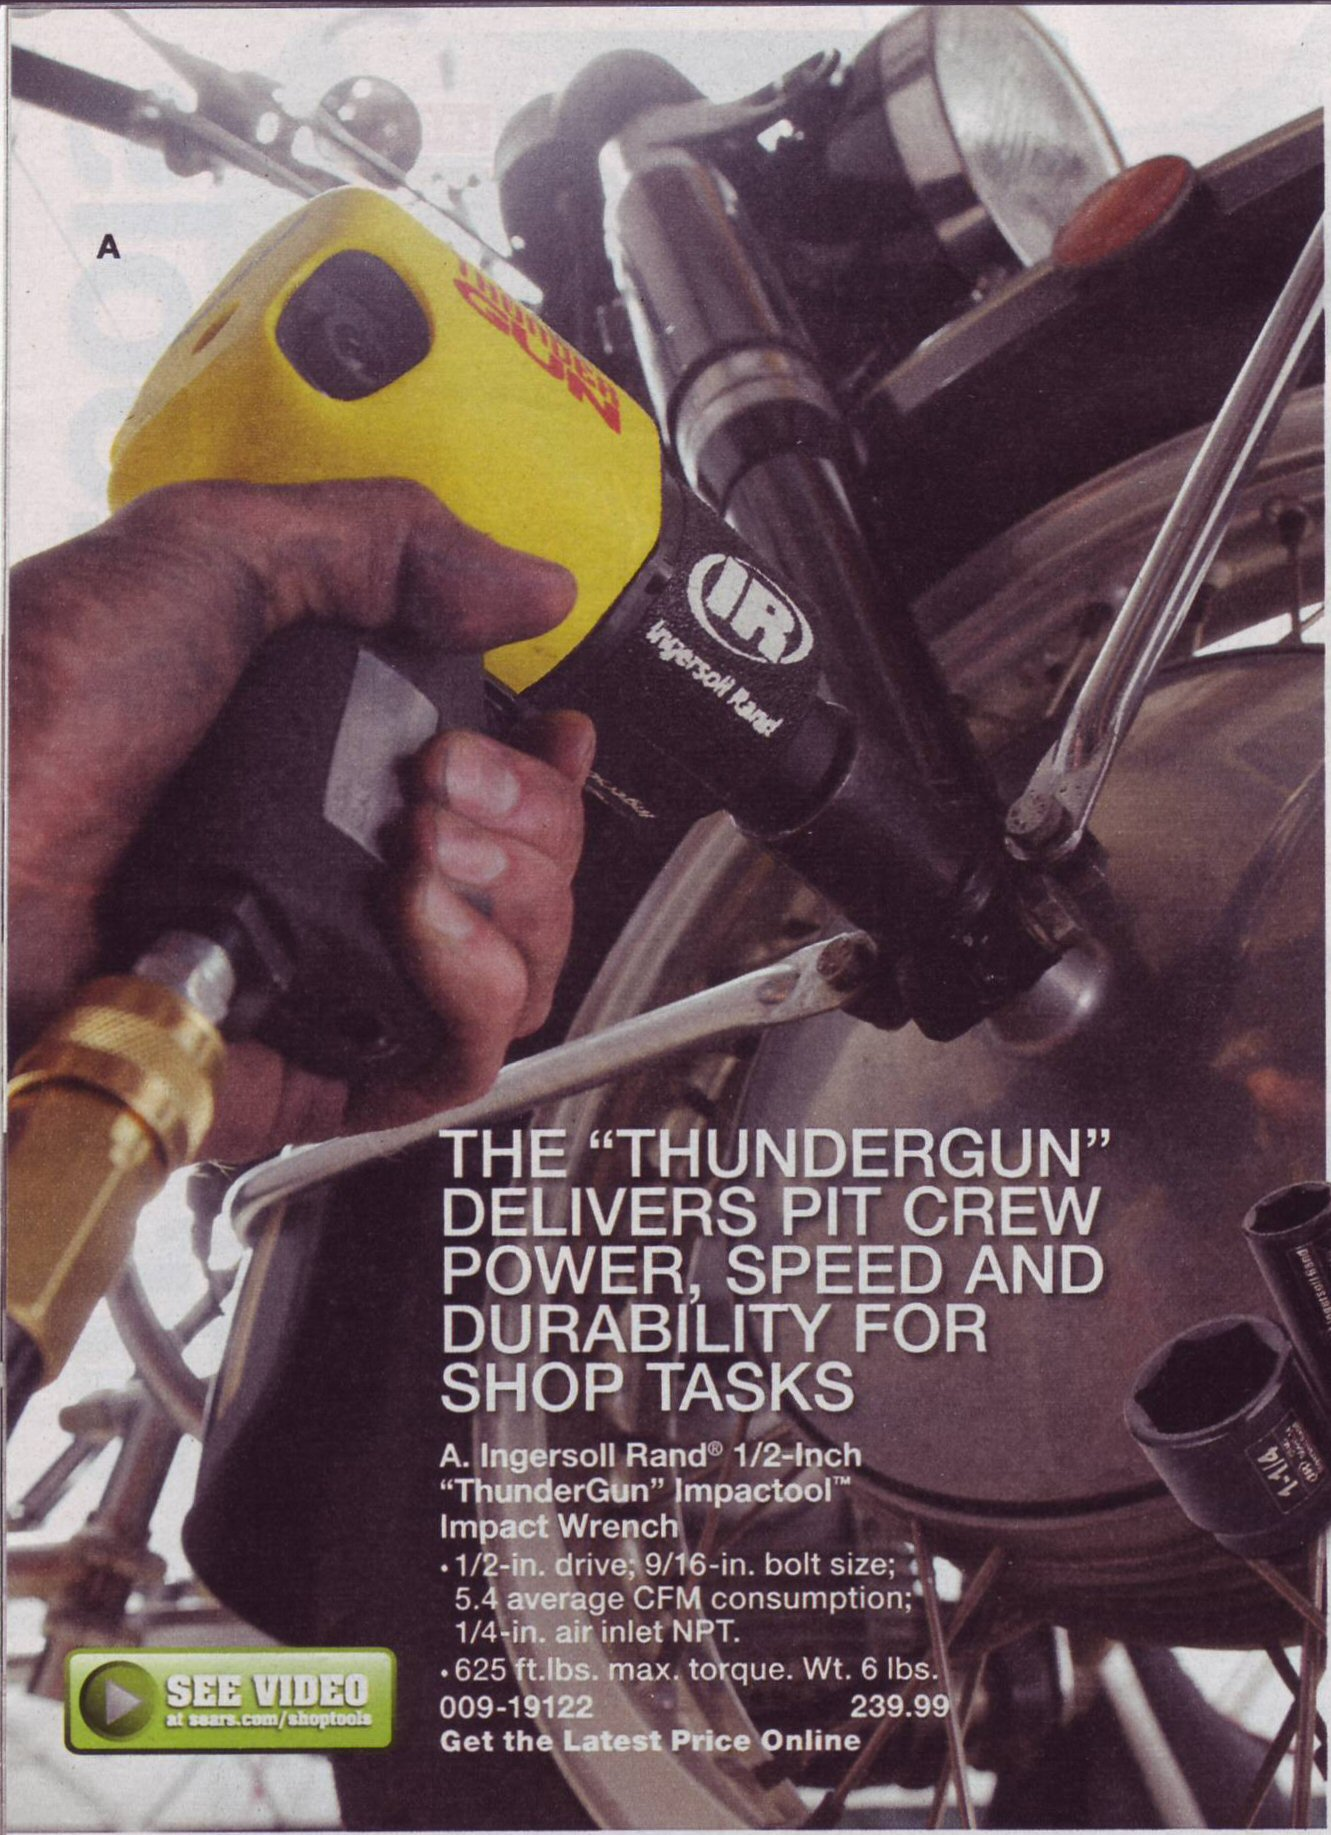 Moto Guzzi advertisement: Sears Cool Blue for Tools catalog for an Ingersoll Rand Thundergun. Catalog is dated 2011 - 2012 on the cover, but it arrived in my mailbox on 2011 February 28.